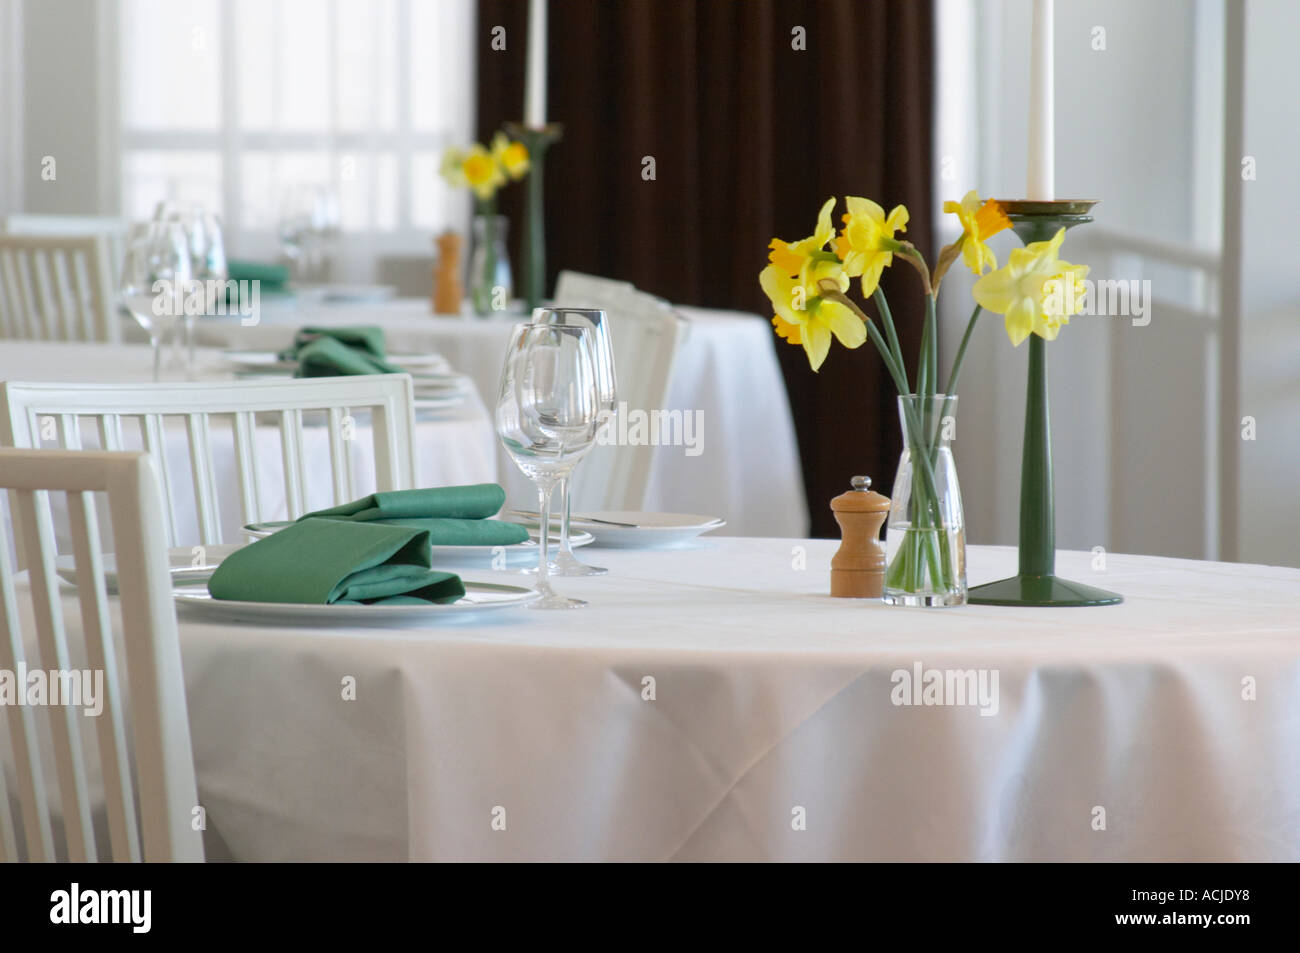 Restaurant table for two - A Restaurant Table With A White Linen Table Cloth Set For Two Person With Plates